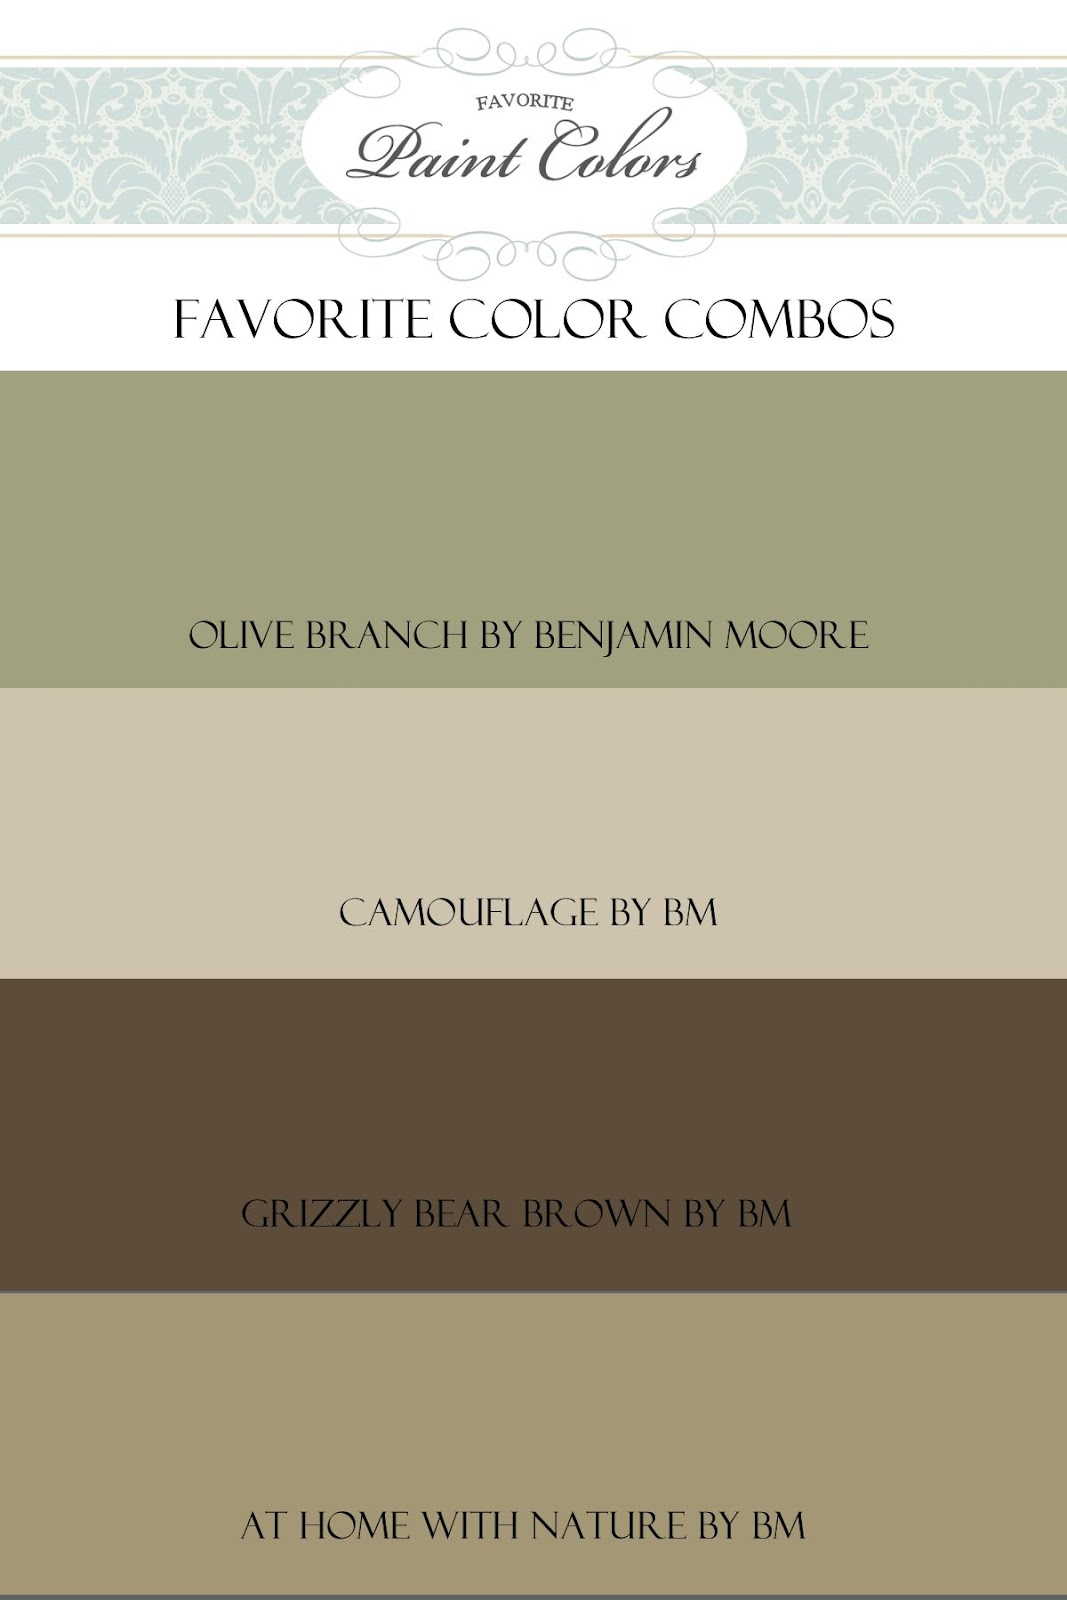 Favorite Paint Colors Olive Branch Color Combo